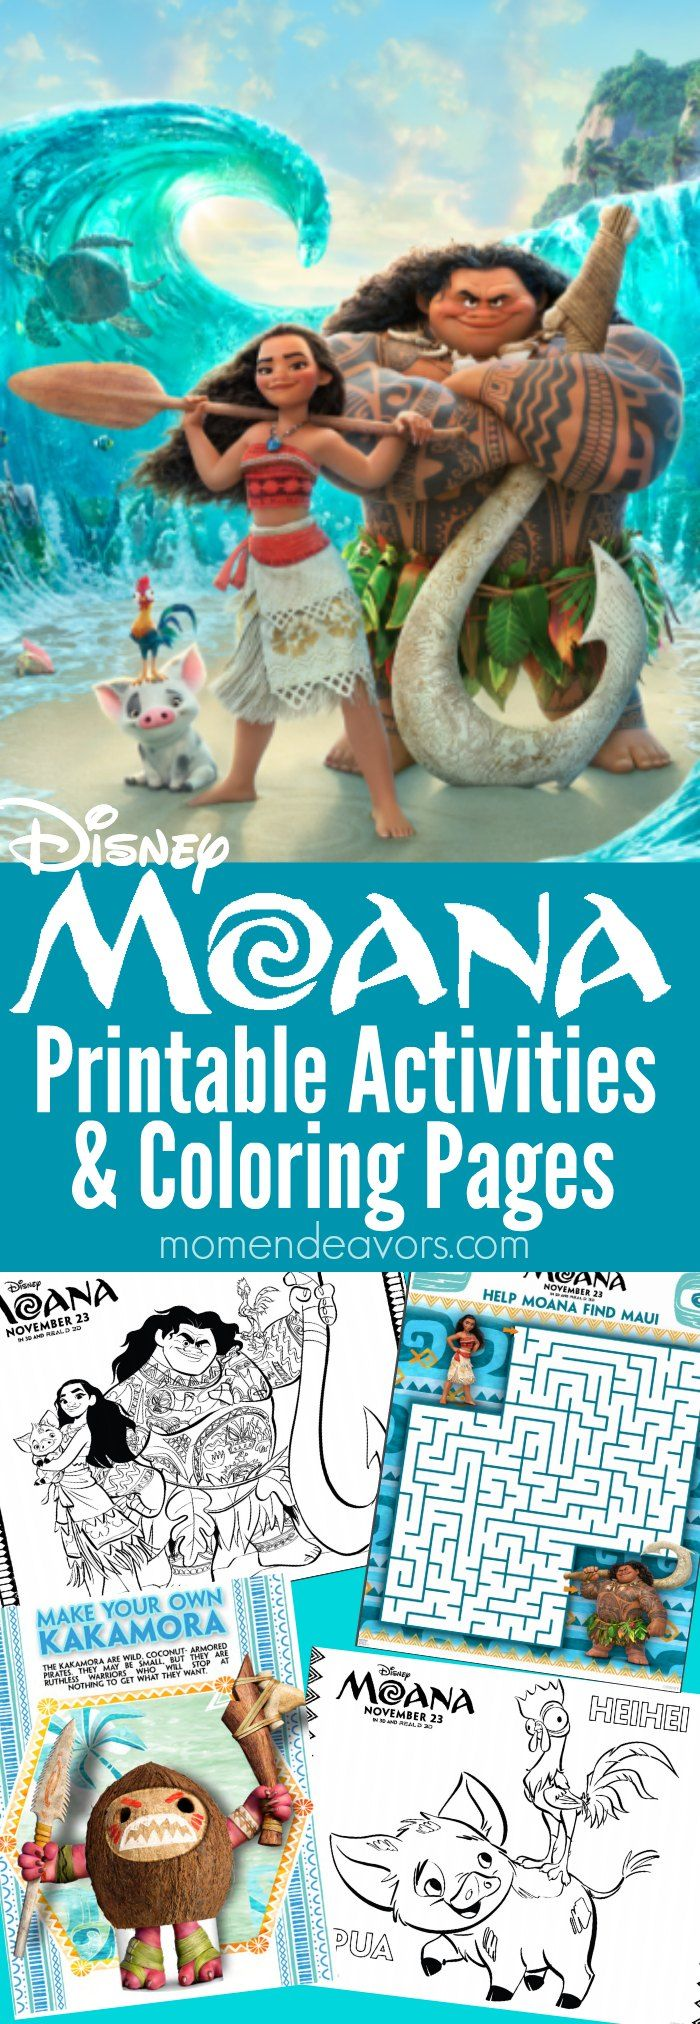 Disney MOANA Printable Activities and coloring pages - kids will love these free printables, perfect for a MOANA party or movie night. Also perfect Disney trip activity or for a family trip to Hawaii!